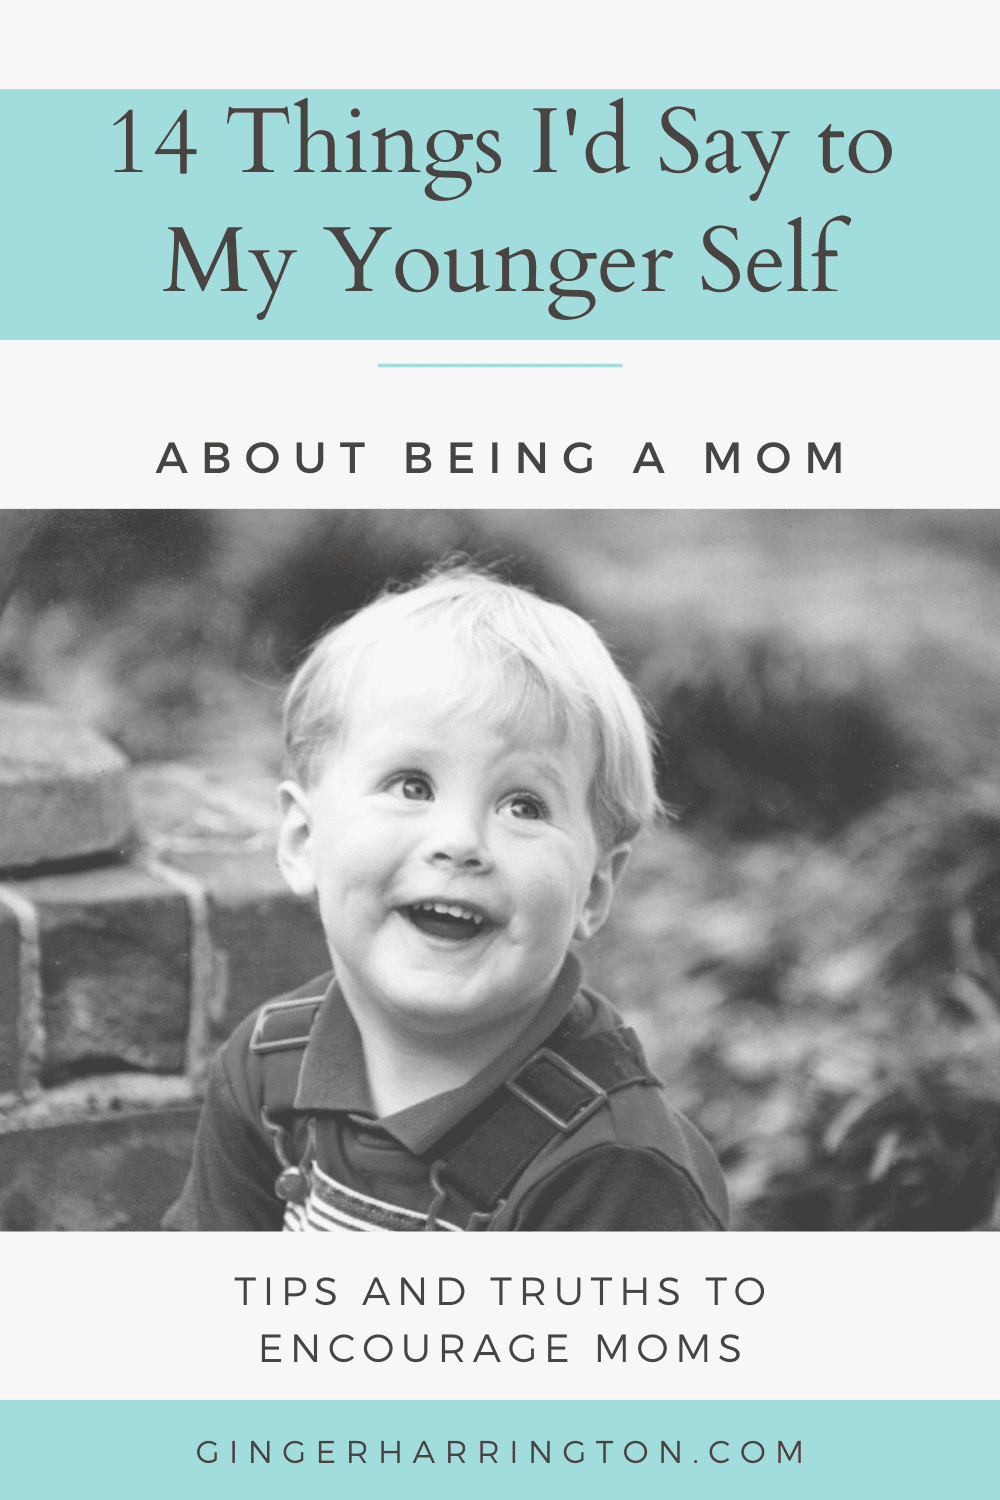 Tips and truths learned from experience in parenting. Experience is the best teacher, and these are the things I'd say to my younger self about being a mom. Parenting tips, encouragement and wisdom for moms is vital to the parenting journey.